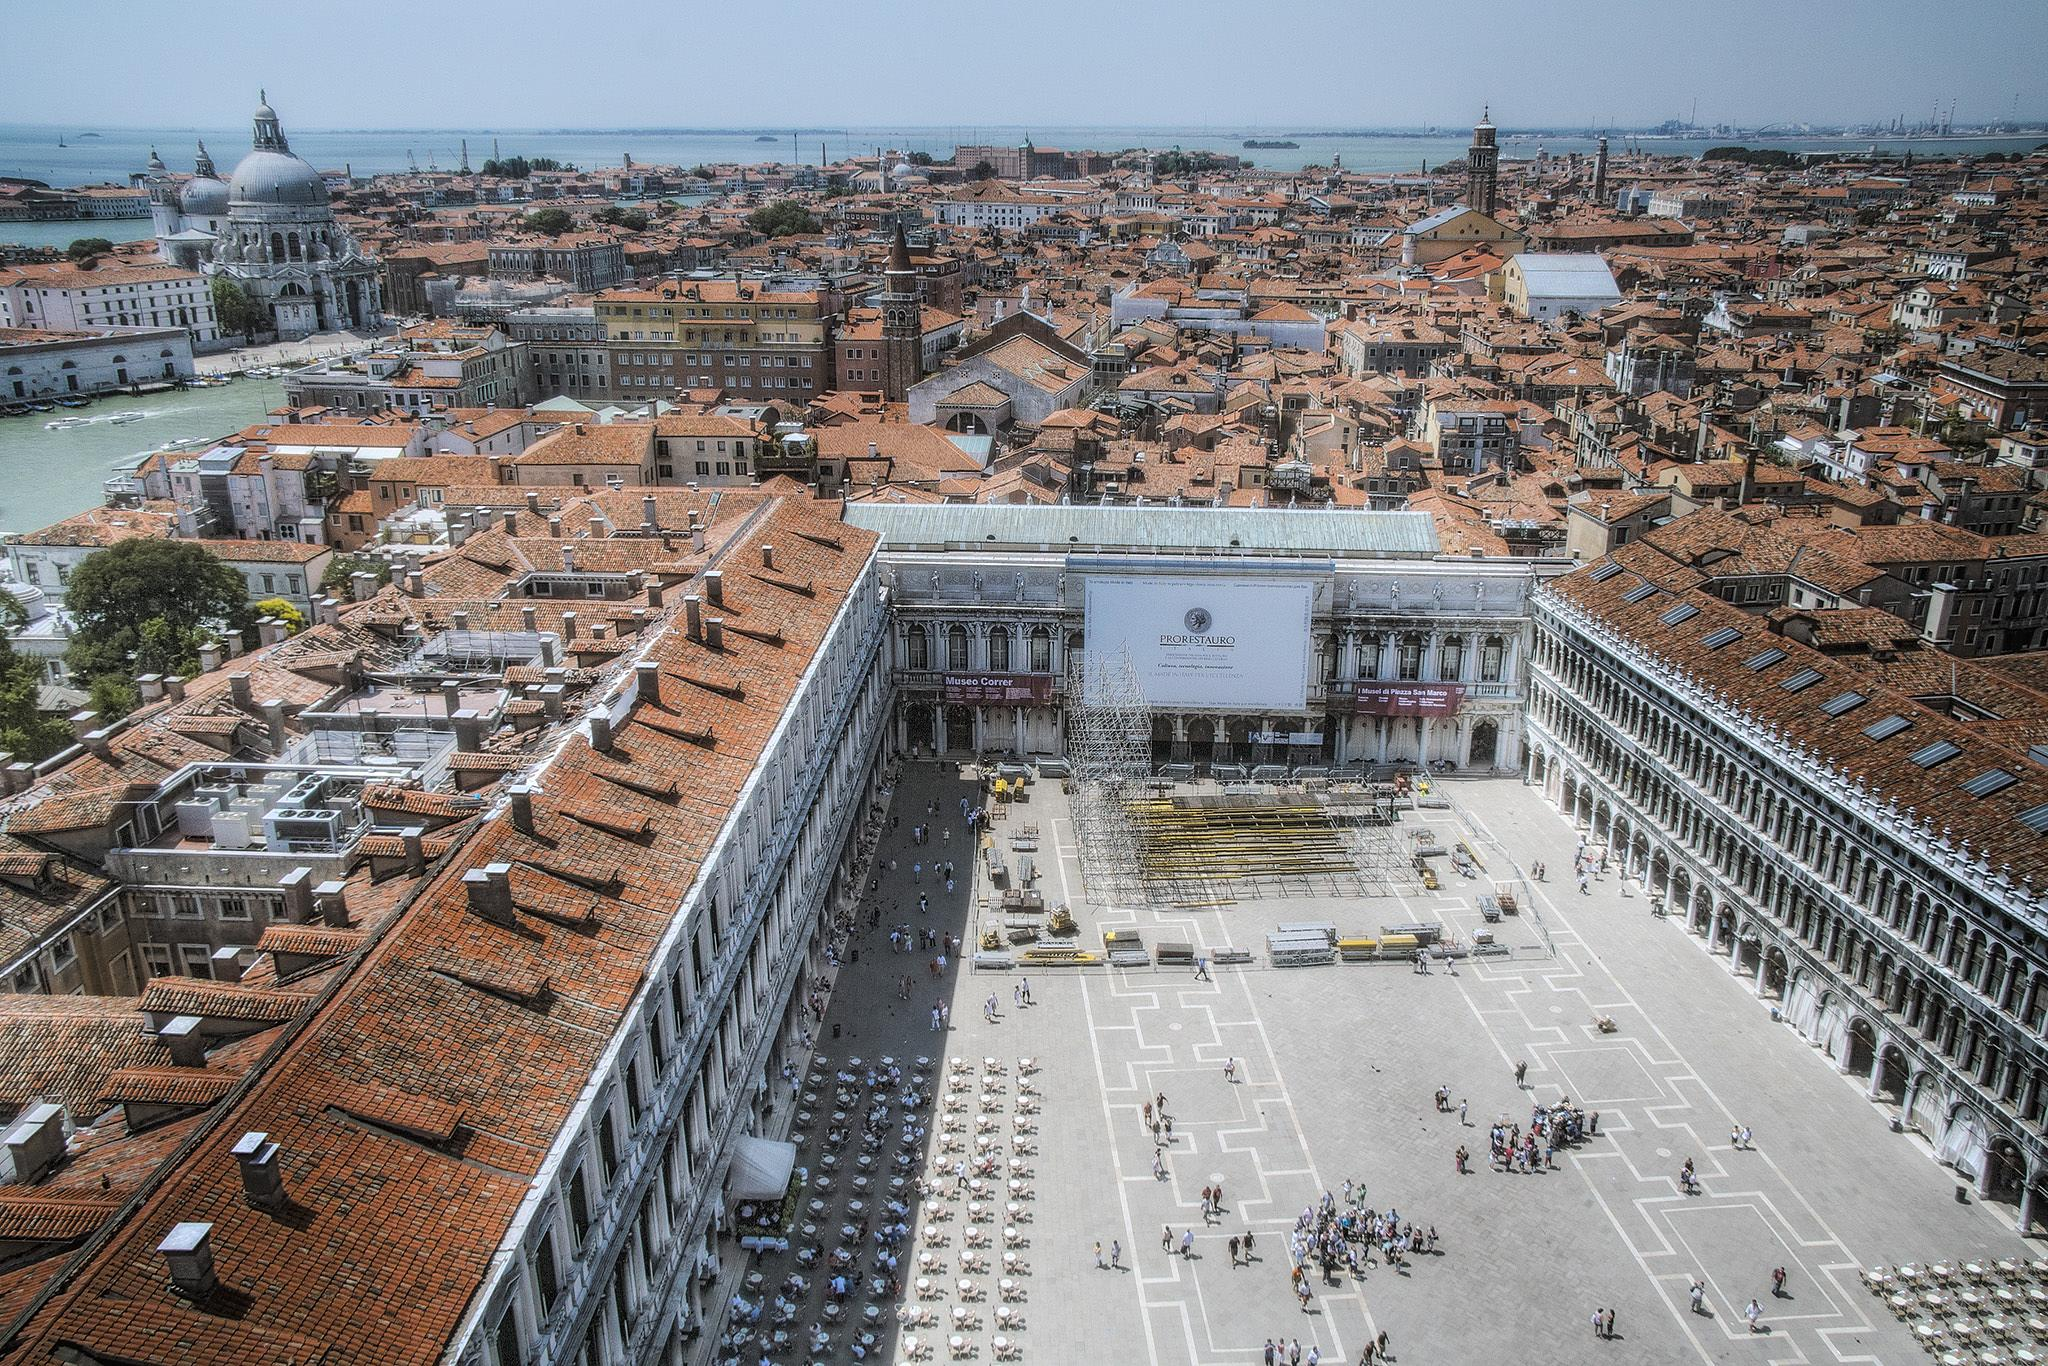 San Marco from above by harald.seiwert